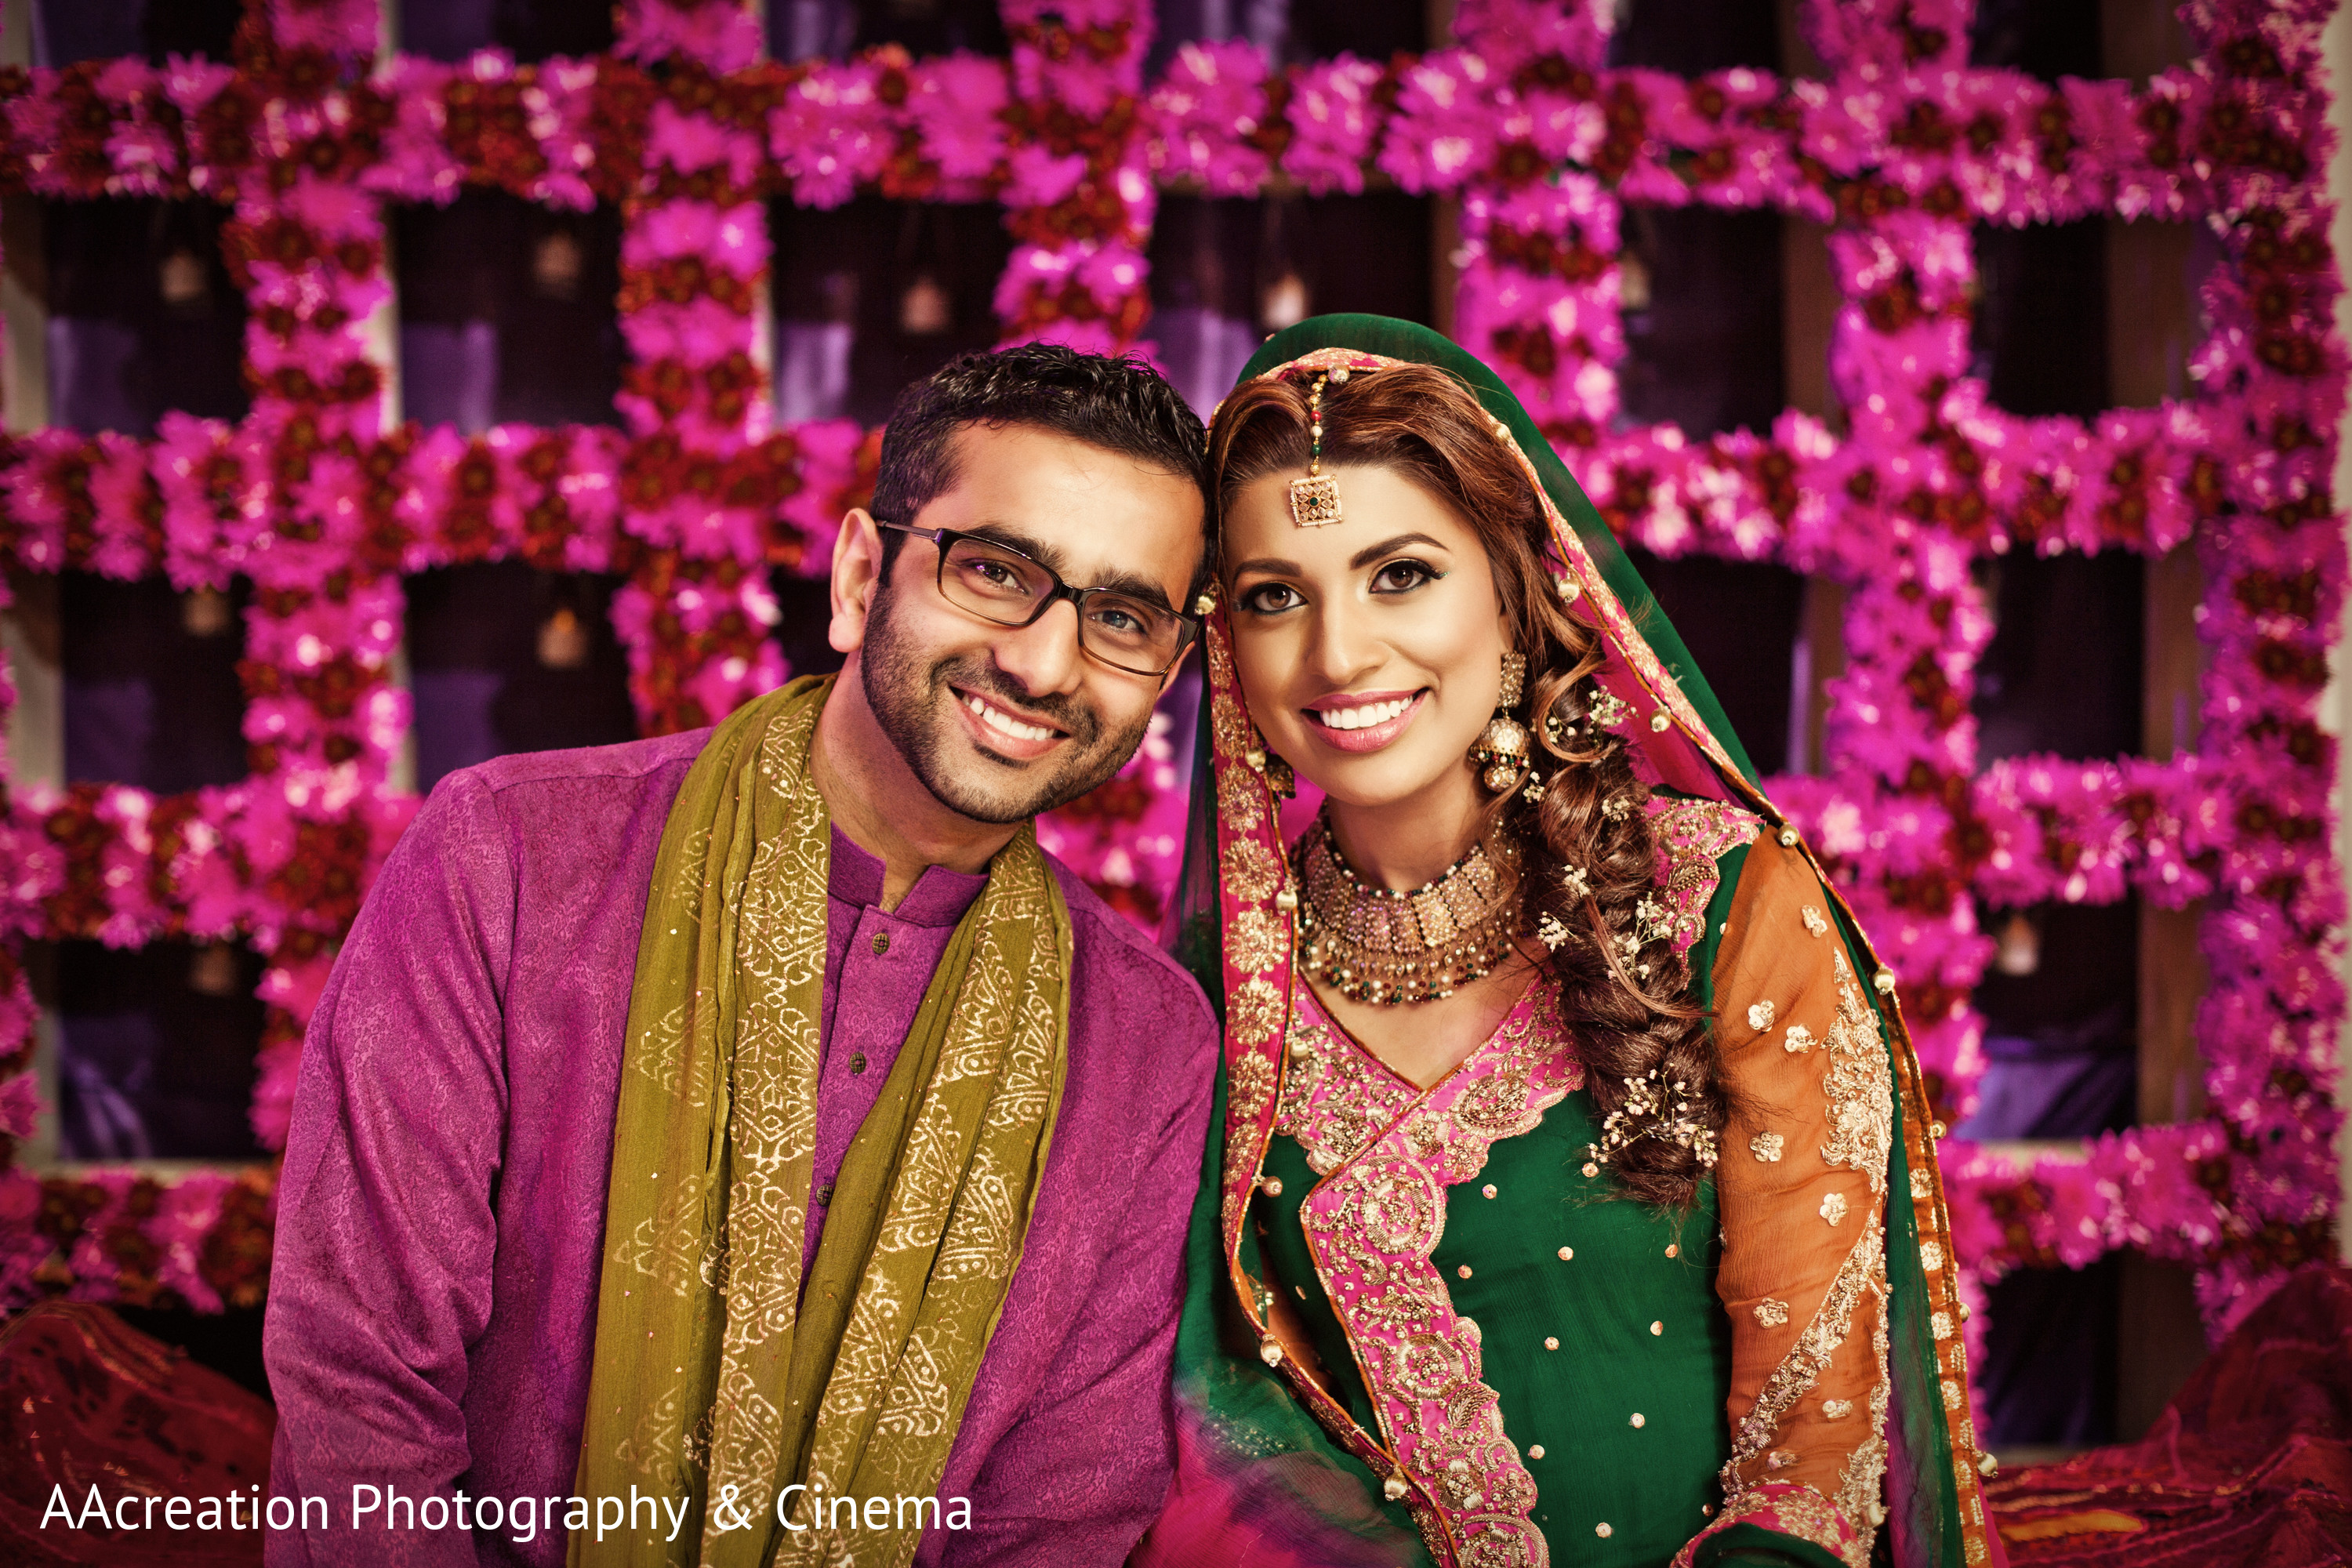 Asian Mehndi Party : Long beach ca pakistani wedding by aacreation photography & cinema